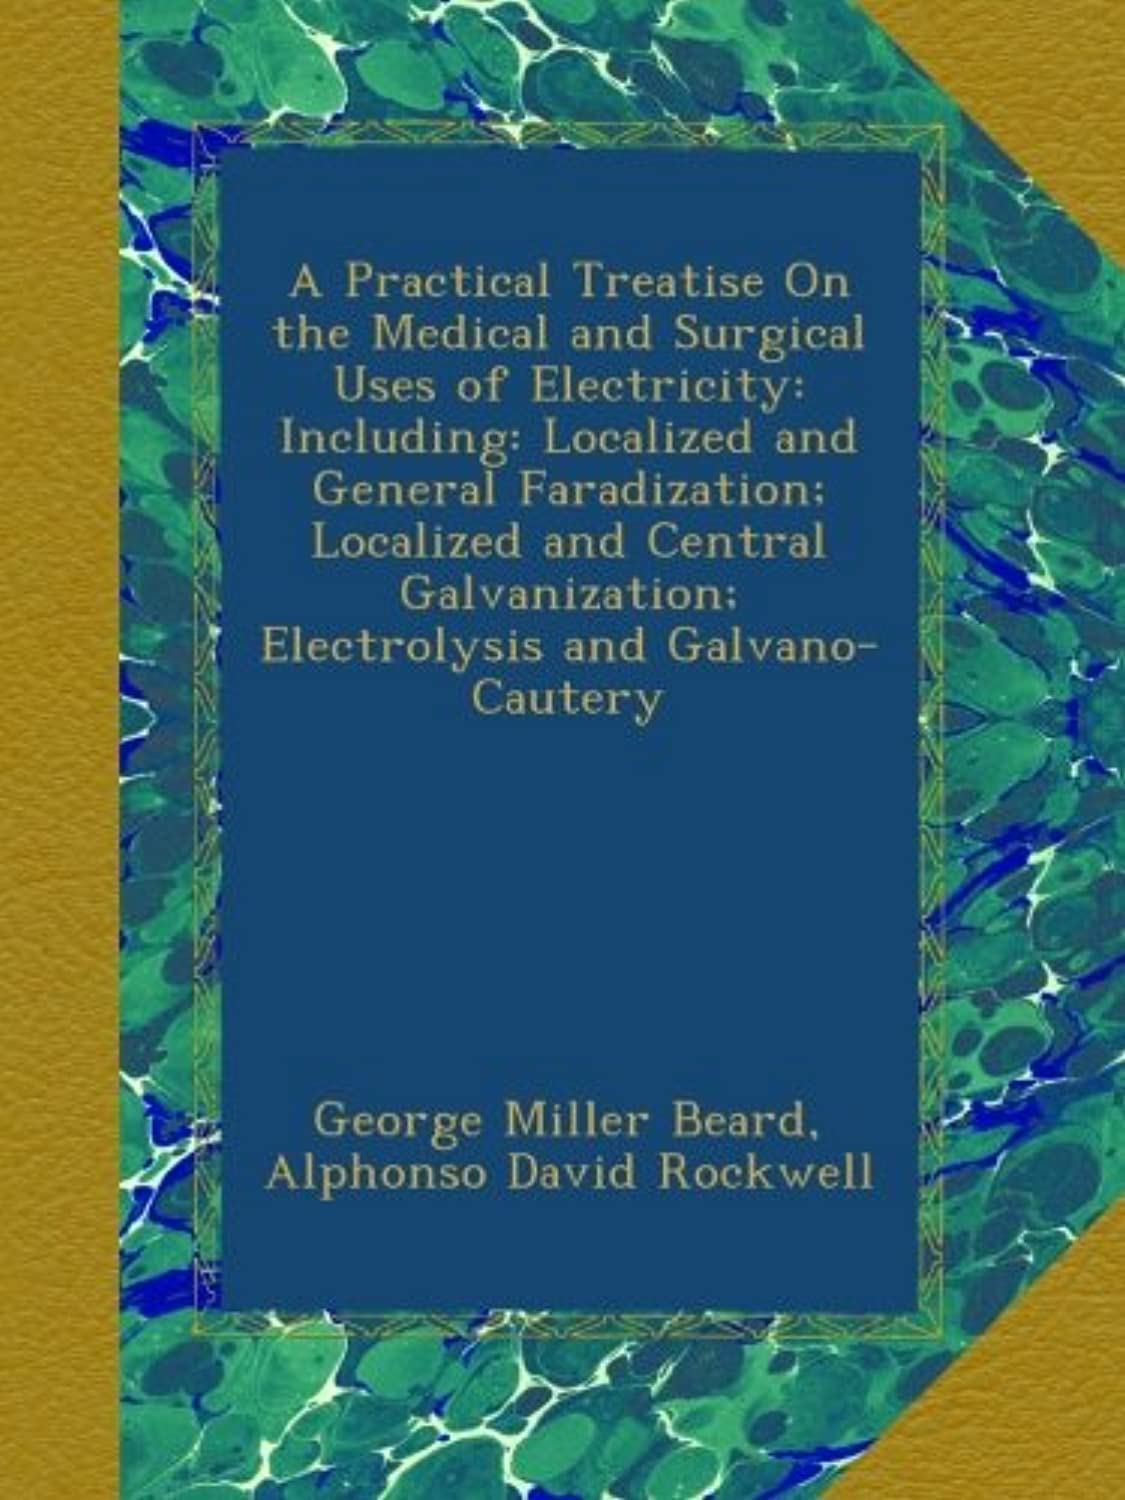 A Practical Treatise On the Medical and Surgical Uses of Electricity: Including: Localized and General Faradization; Localized and Central Galvanization; Electrolysis and Galvano-Cautery